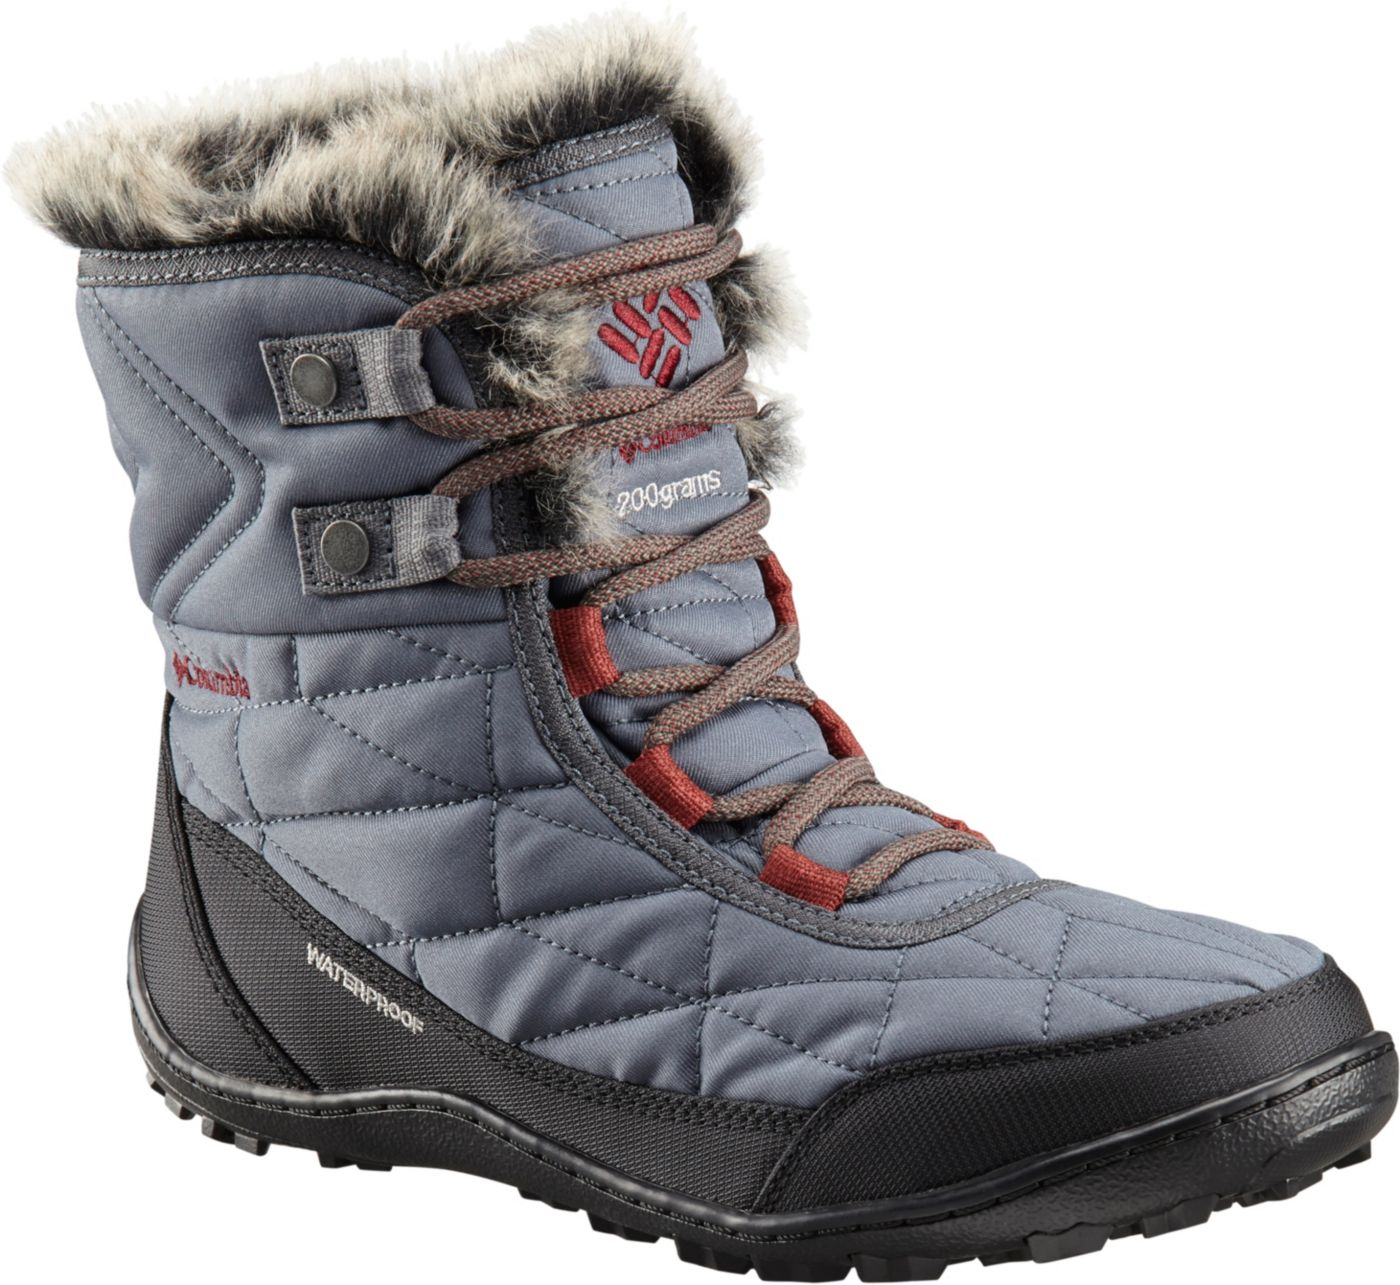 Columbia Women's Minx Shorty III 200g Winter Boots